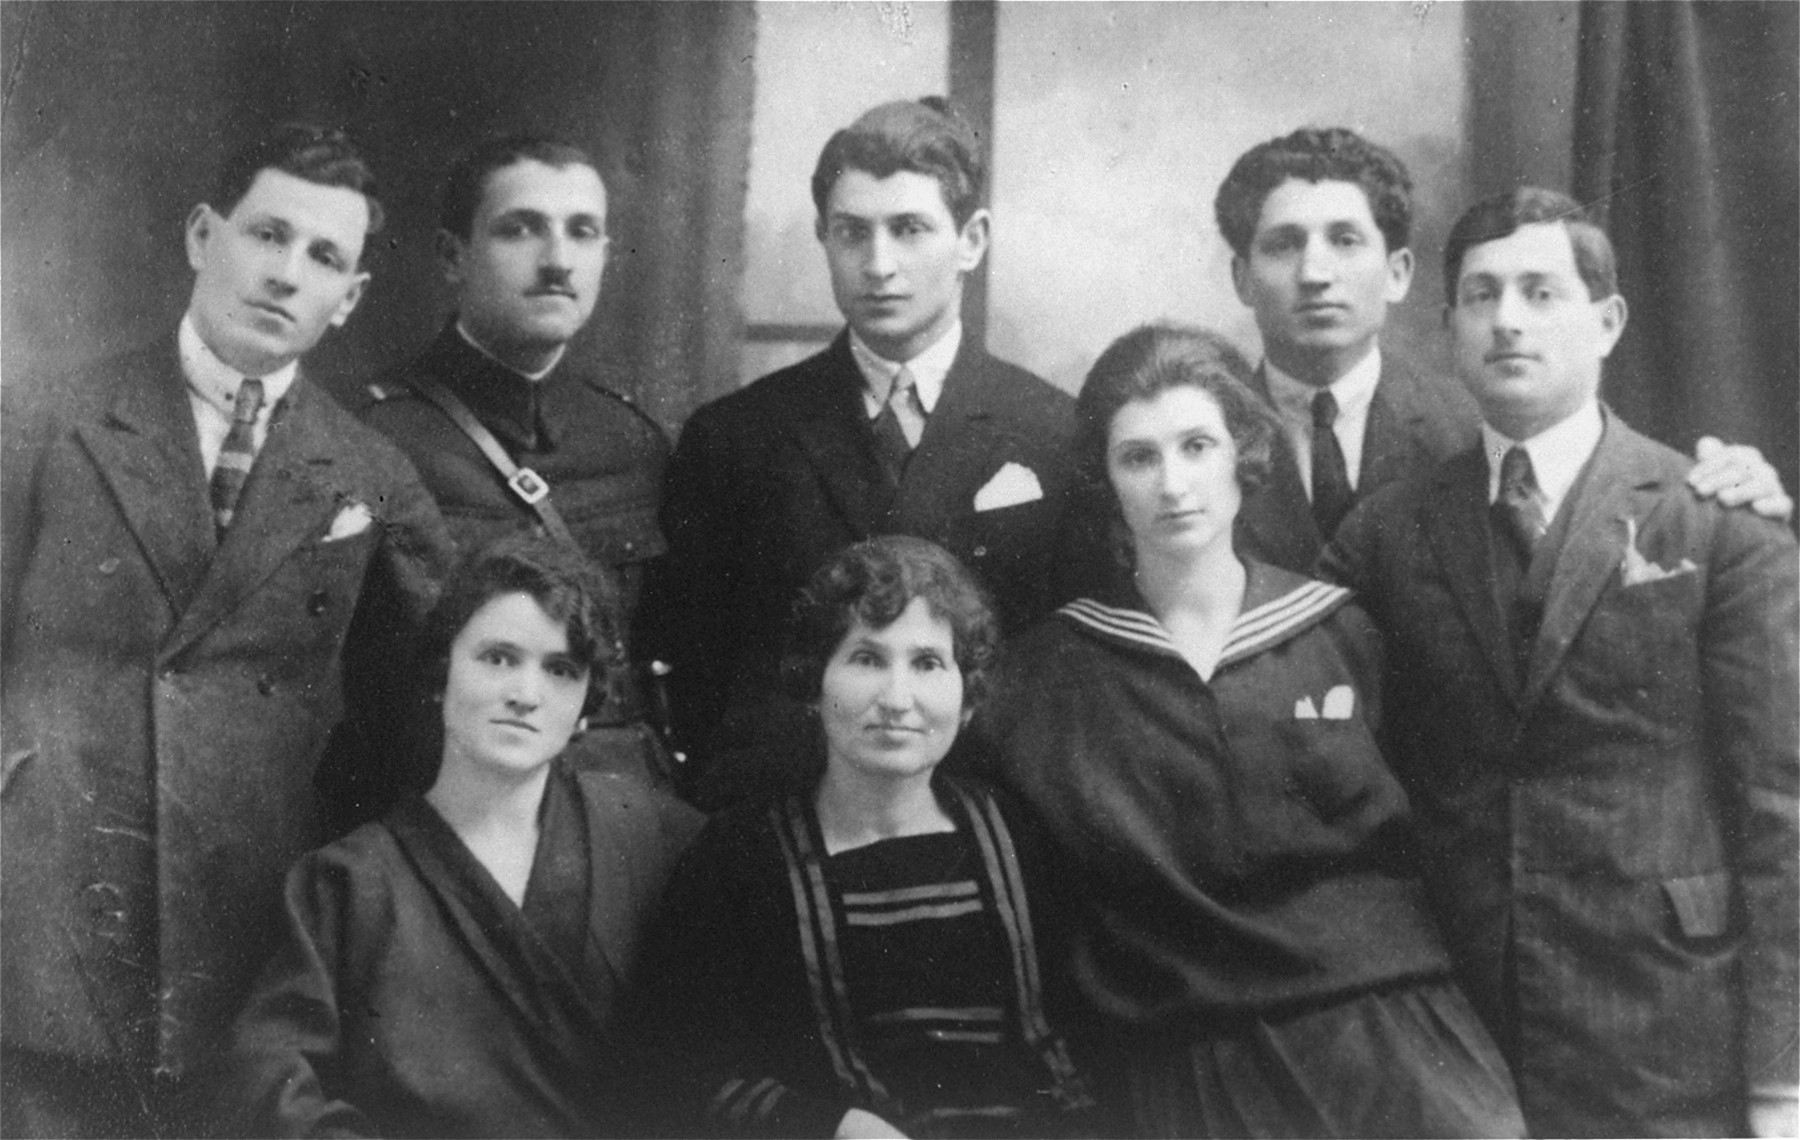 Prewar portrait of a Romanian Jewish family.  Pictured are the Weisz family.  From left to right: (back row) Hermann, Joseph, Moshe, Marcel, and Alexander (front row) Rose, Lenke Friedman-Weisz, and Olga. Hermann later married Magda Pollak and had a child, Evi.